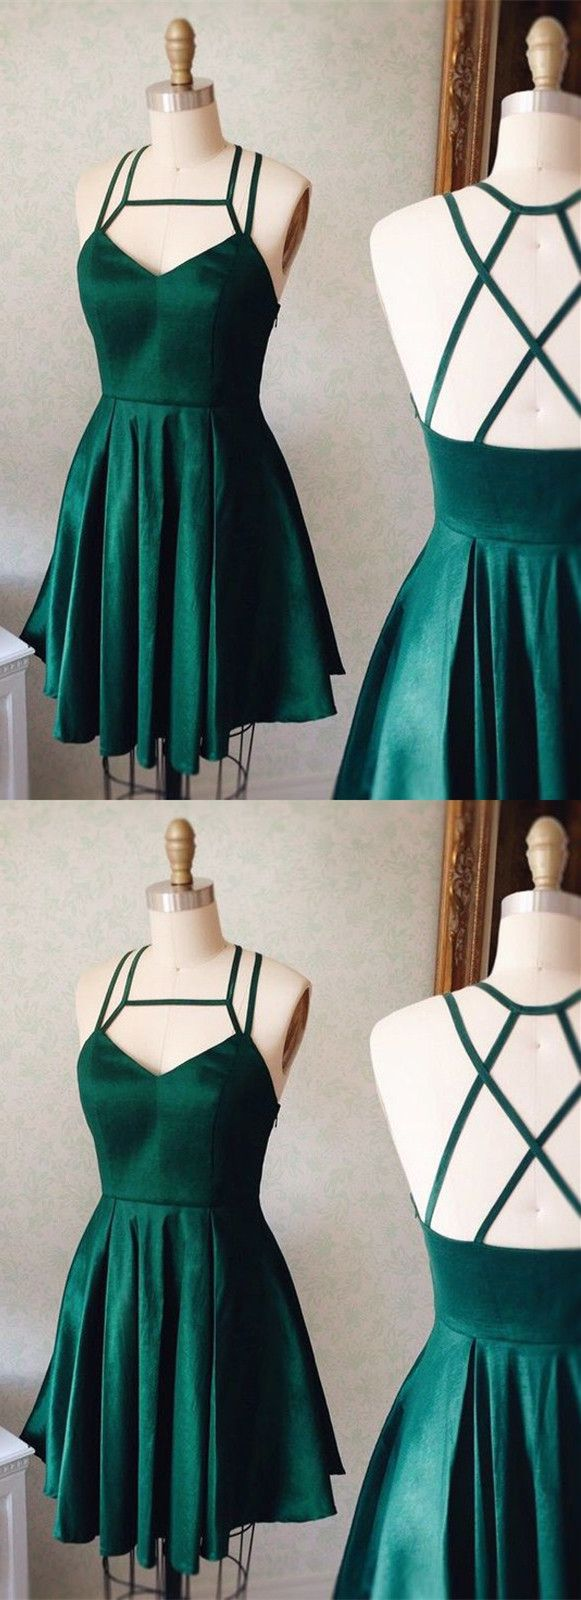 criss-cross back party dresses, cute green homecoming dreses, short semi formal dresses